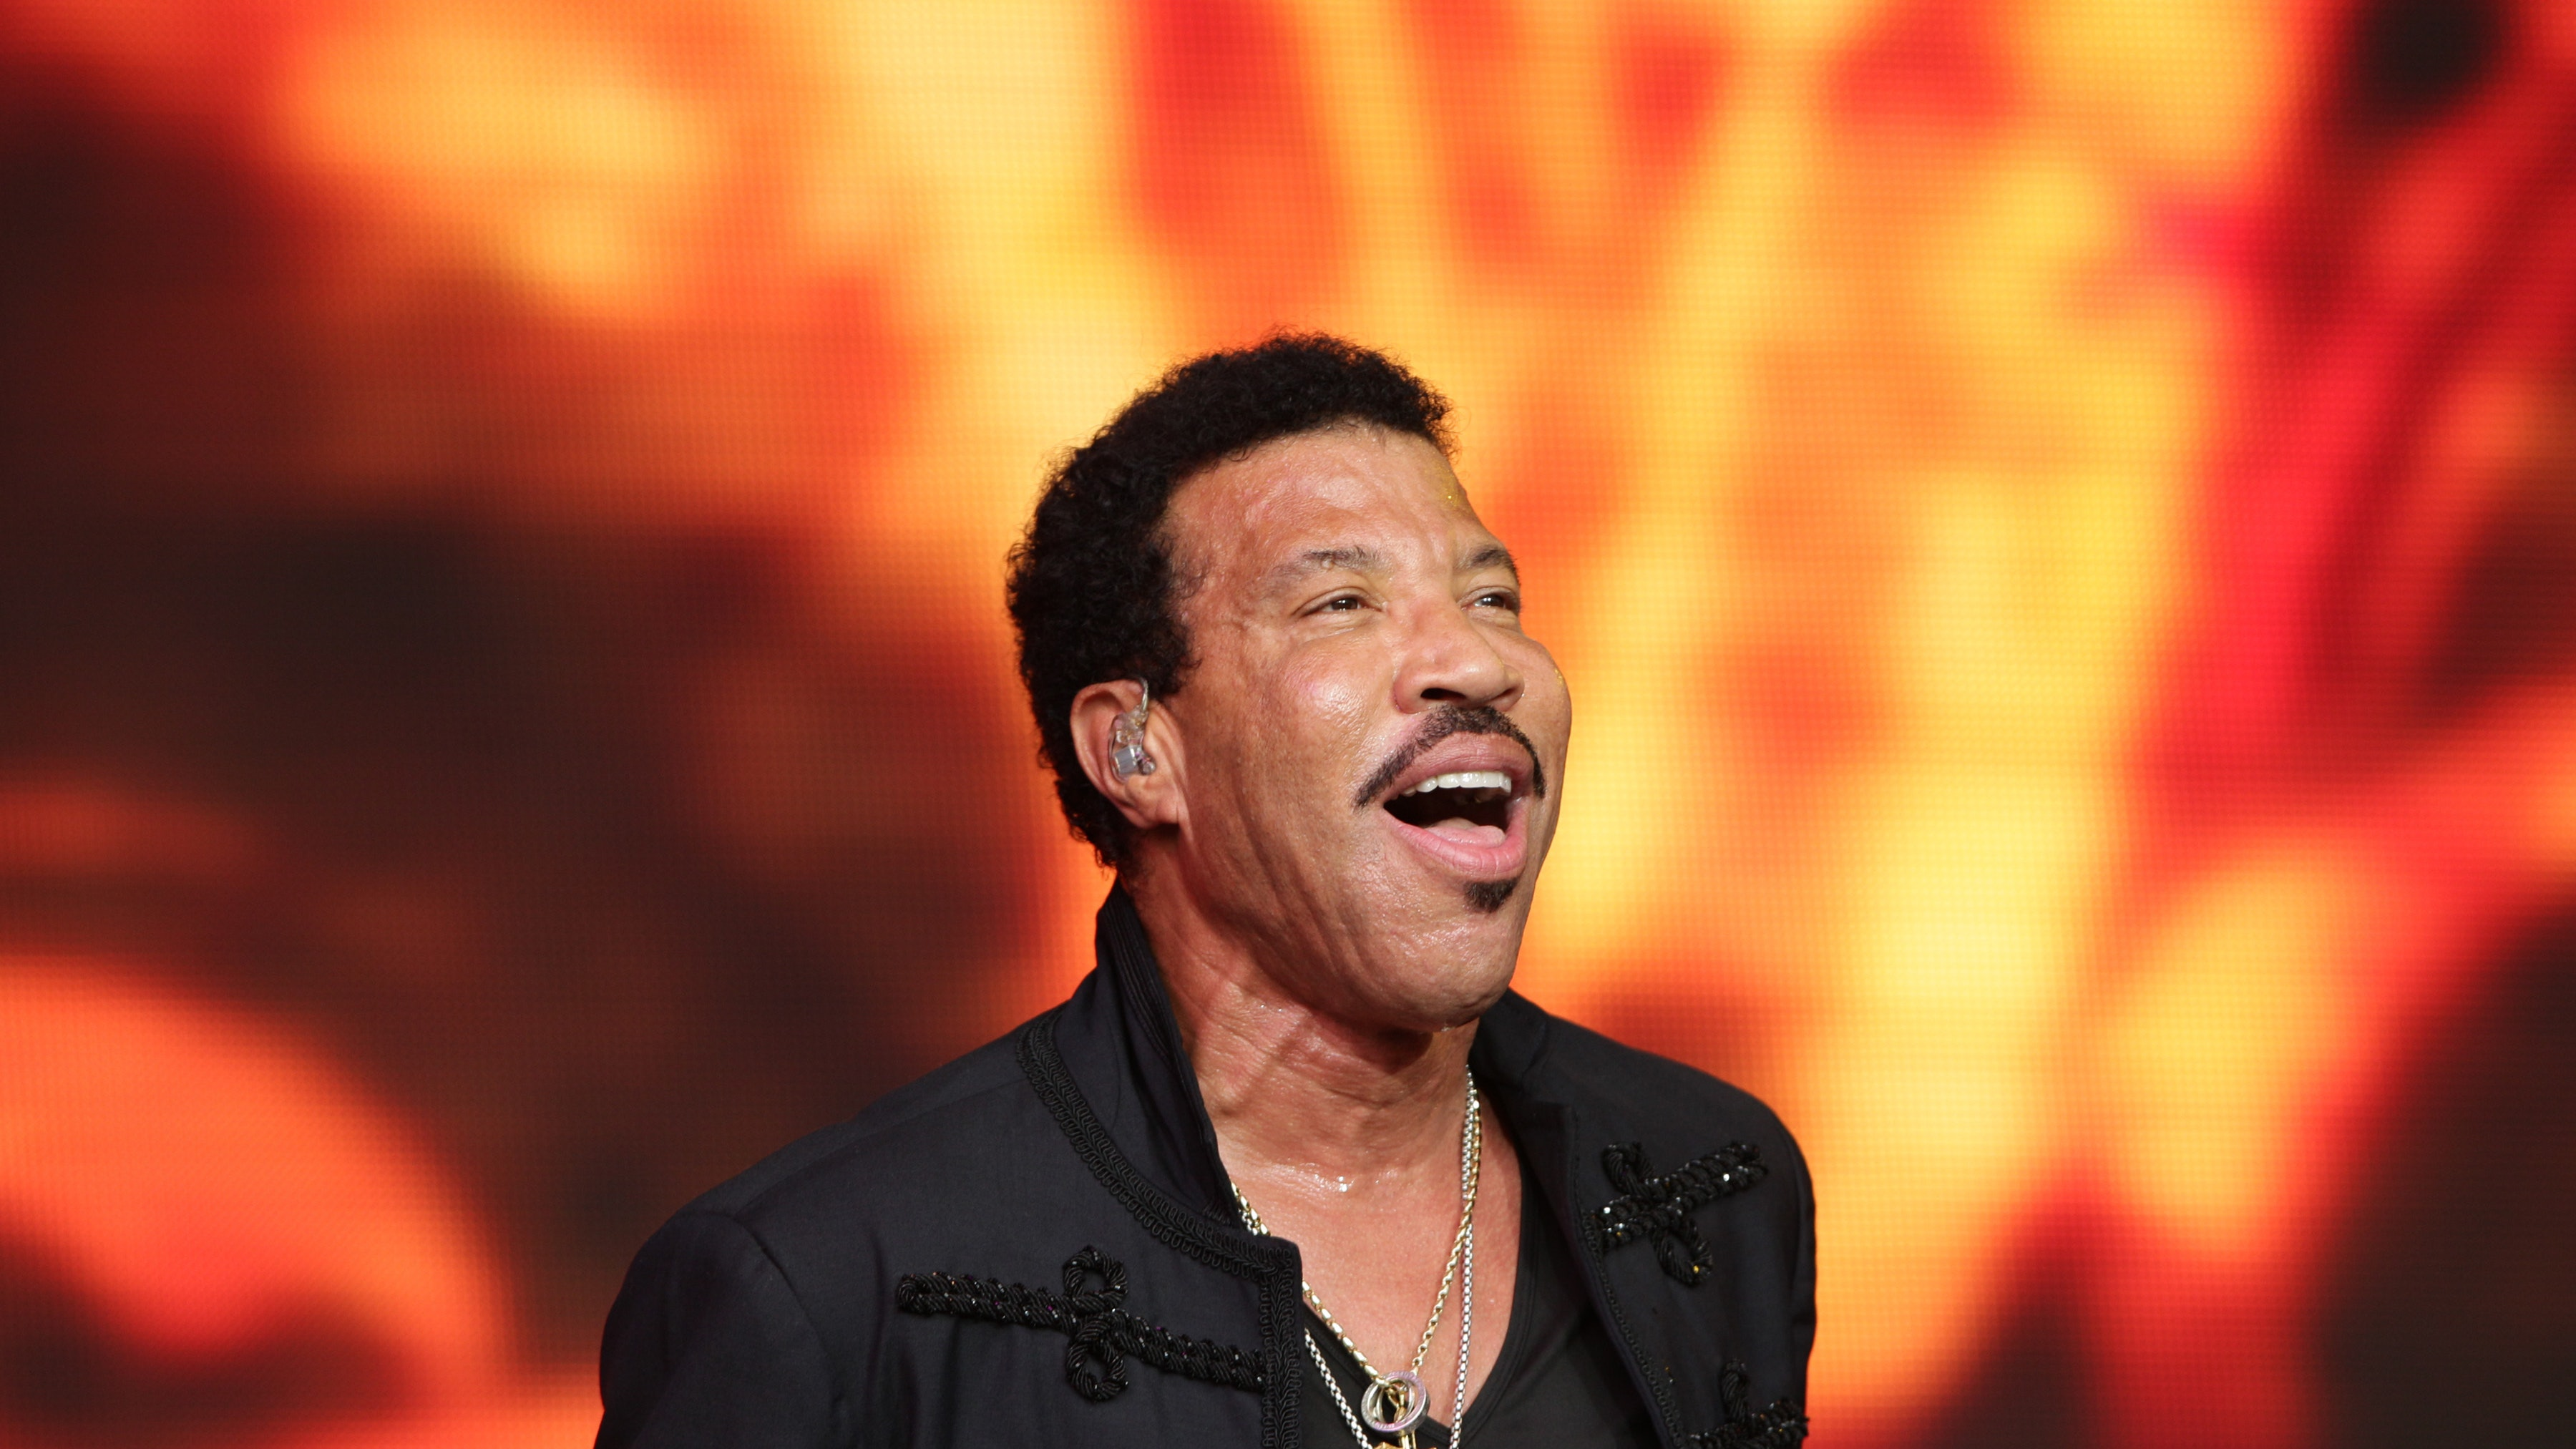 Lionel Richie announces Perth concert as part of United Kingdom tour